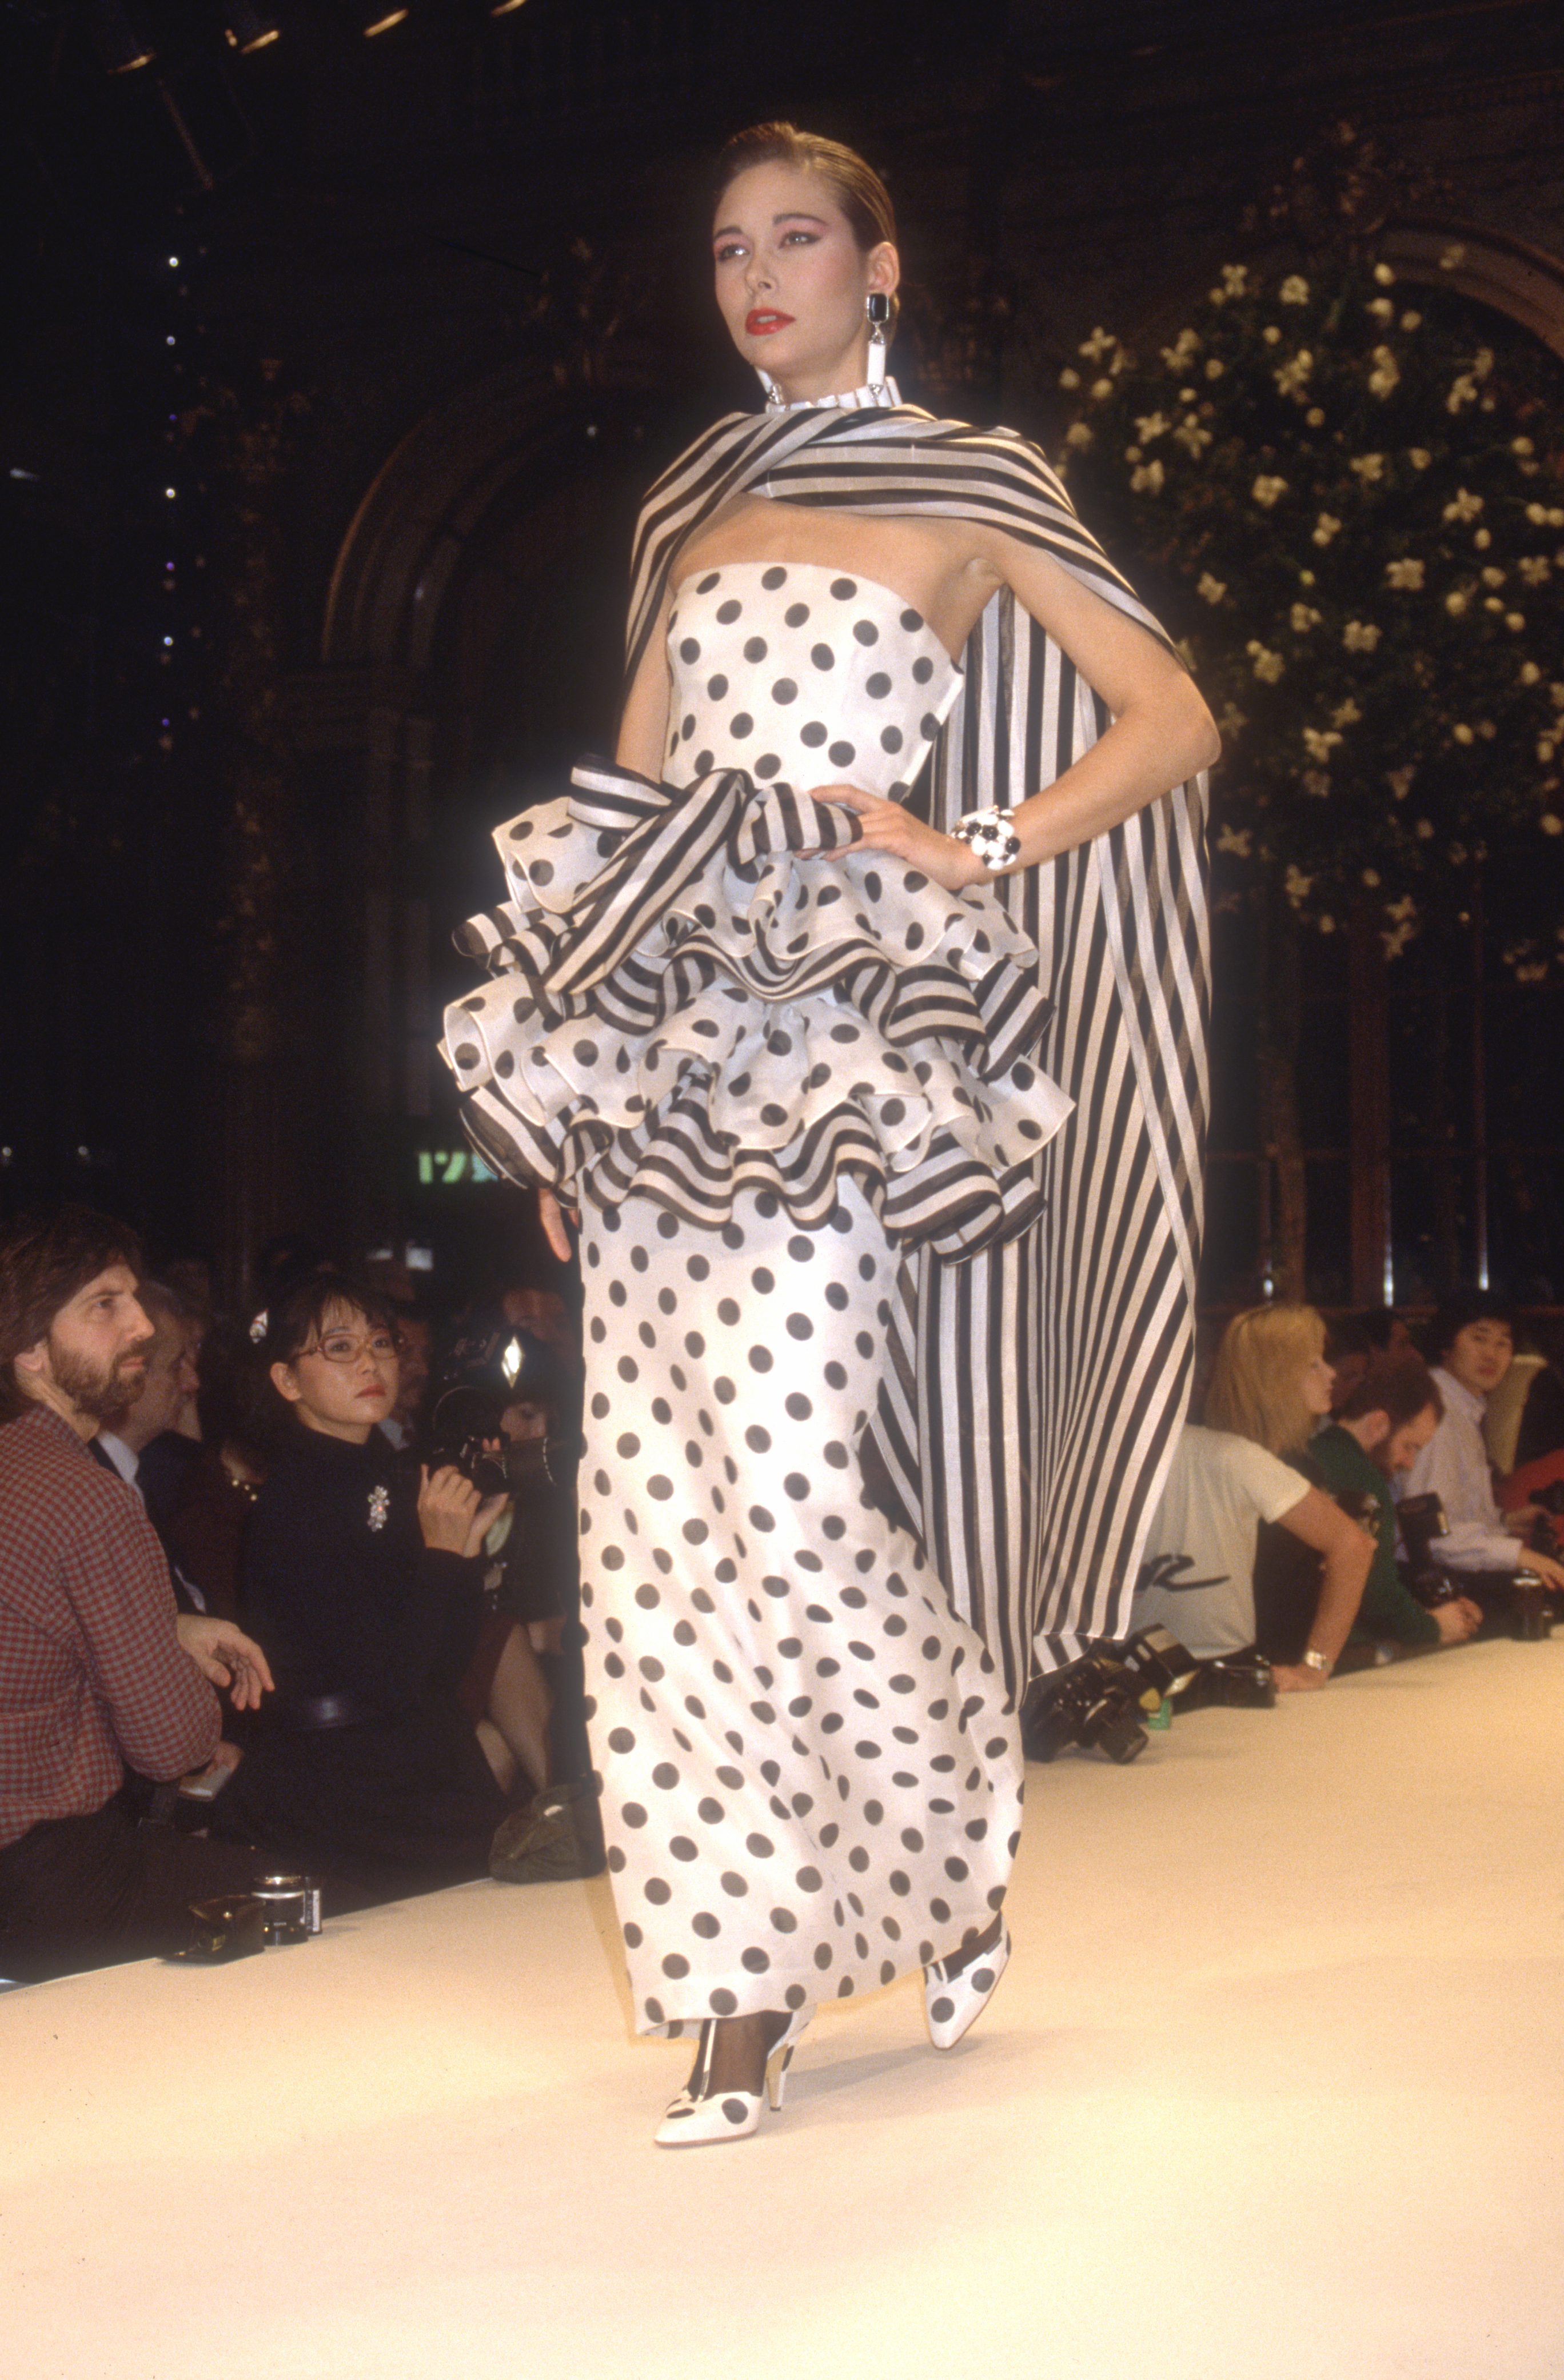 Givenchy Spring-Summer 1988 Fashion Show